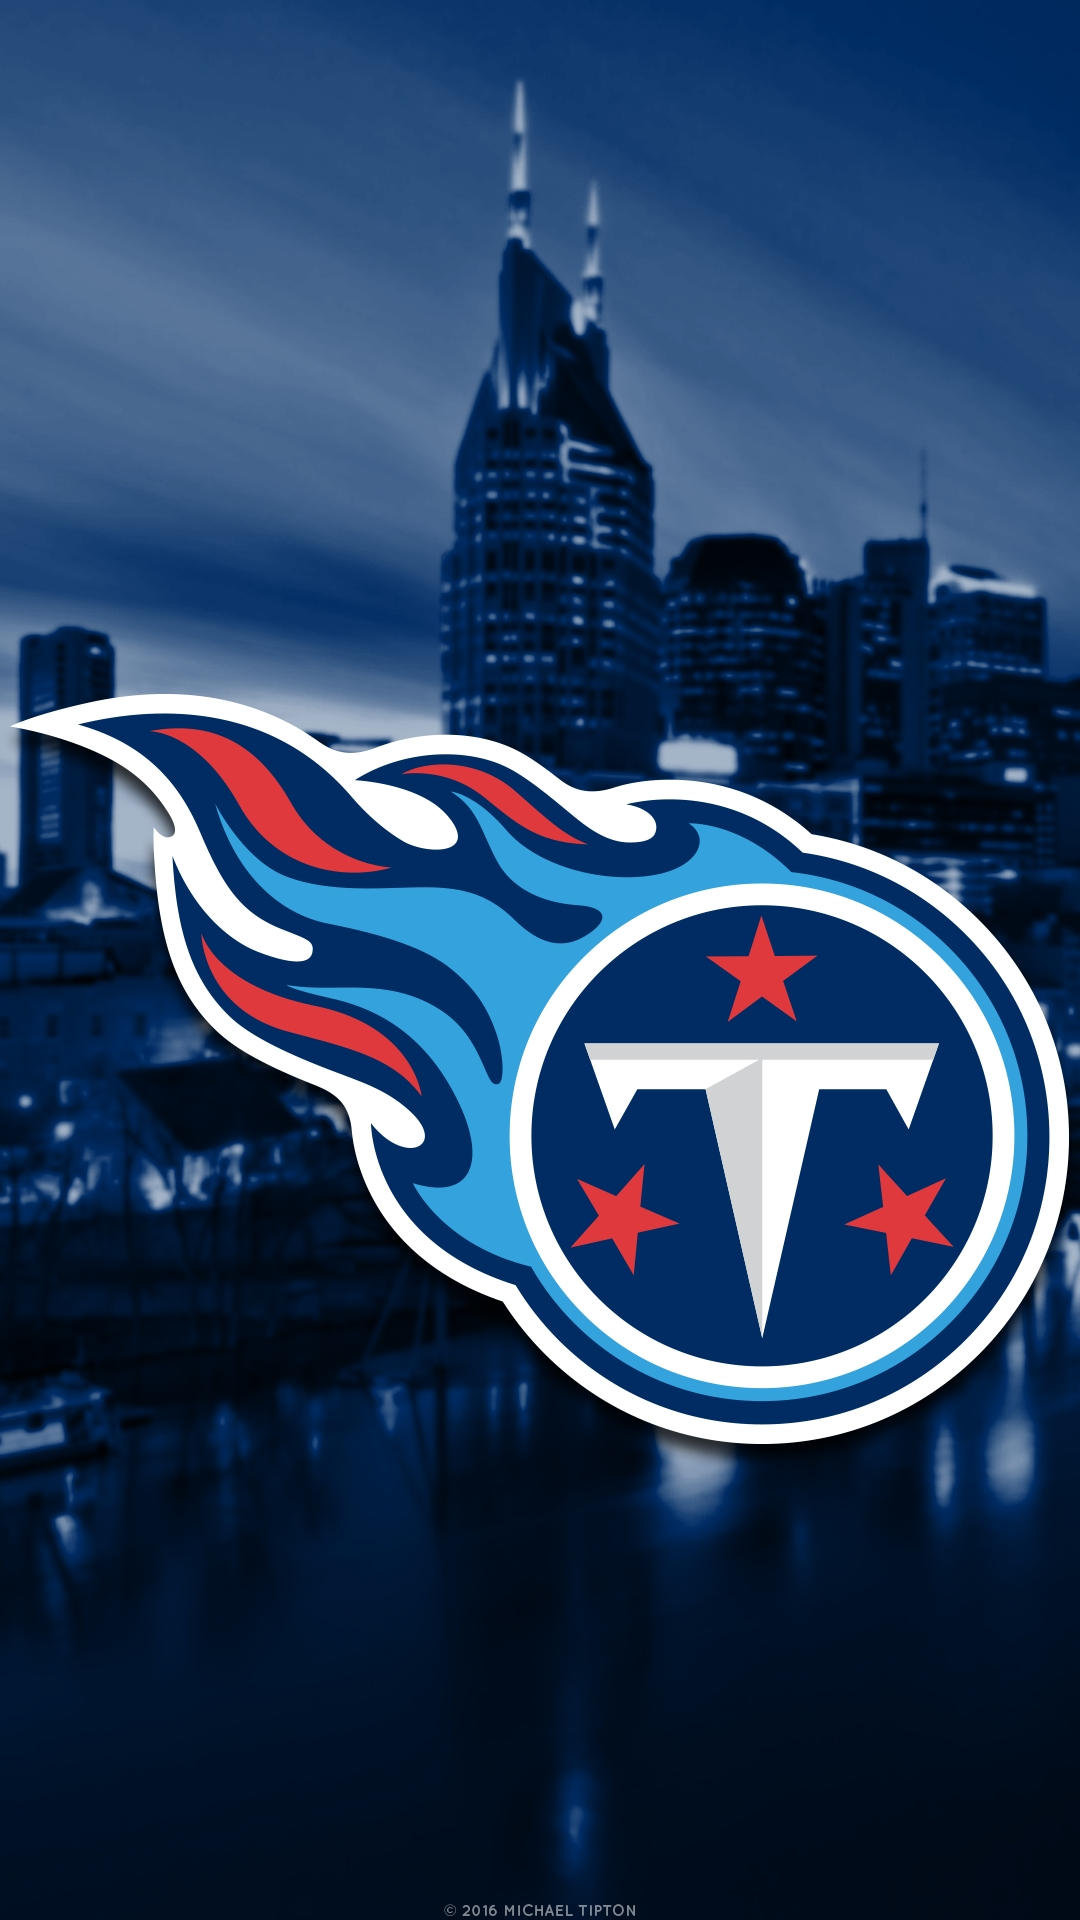 2018 tennessee titans wallpapers - pc |iphone| android